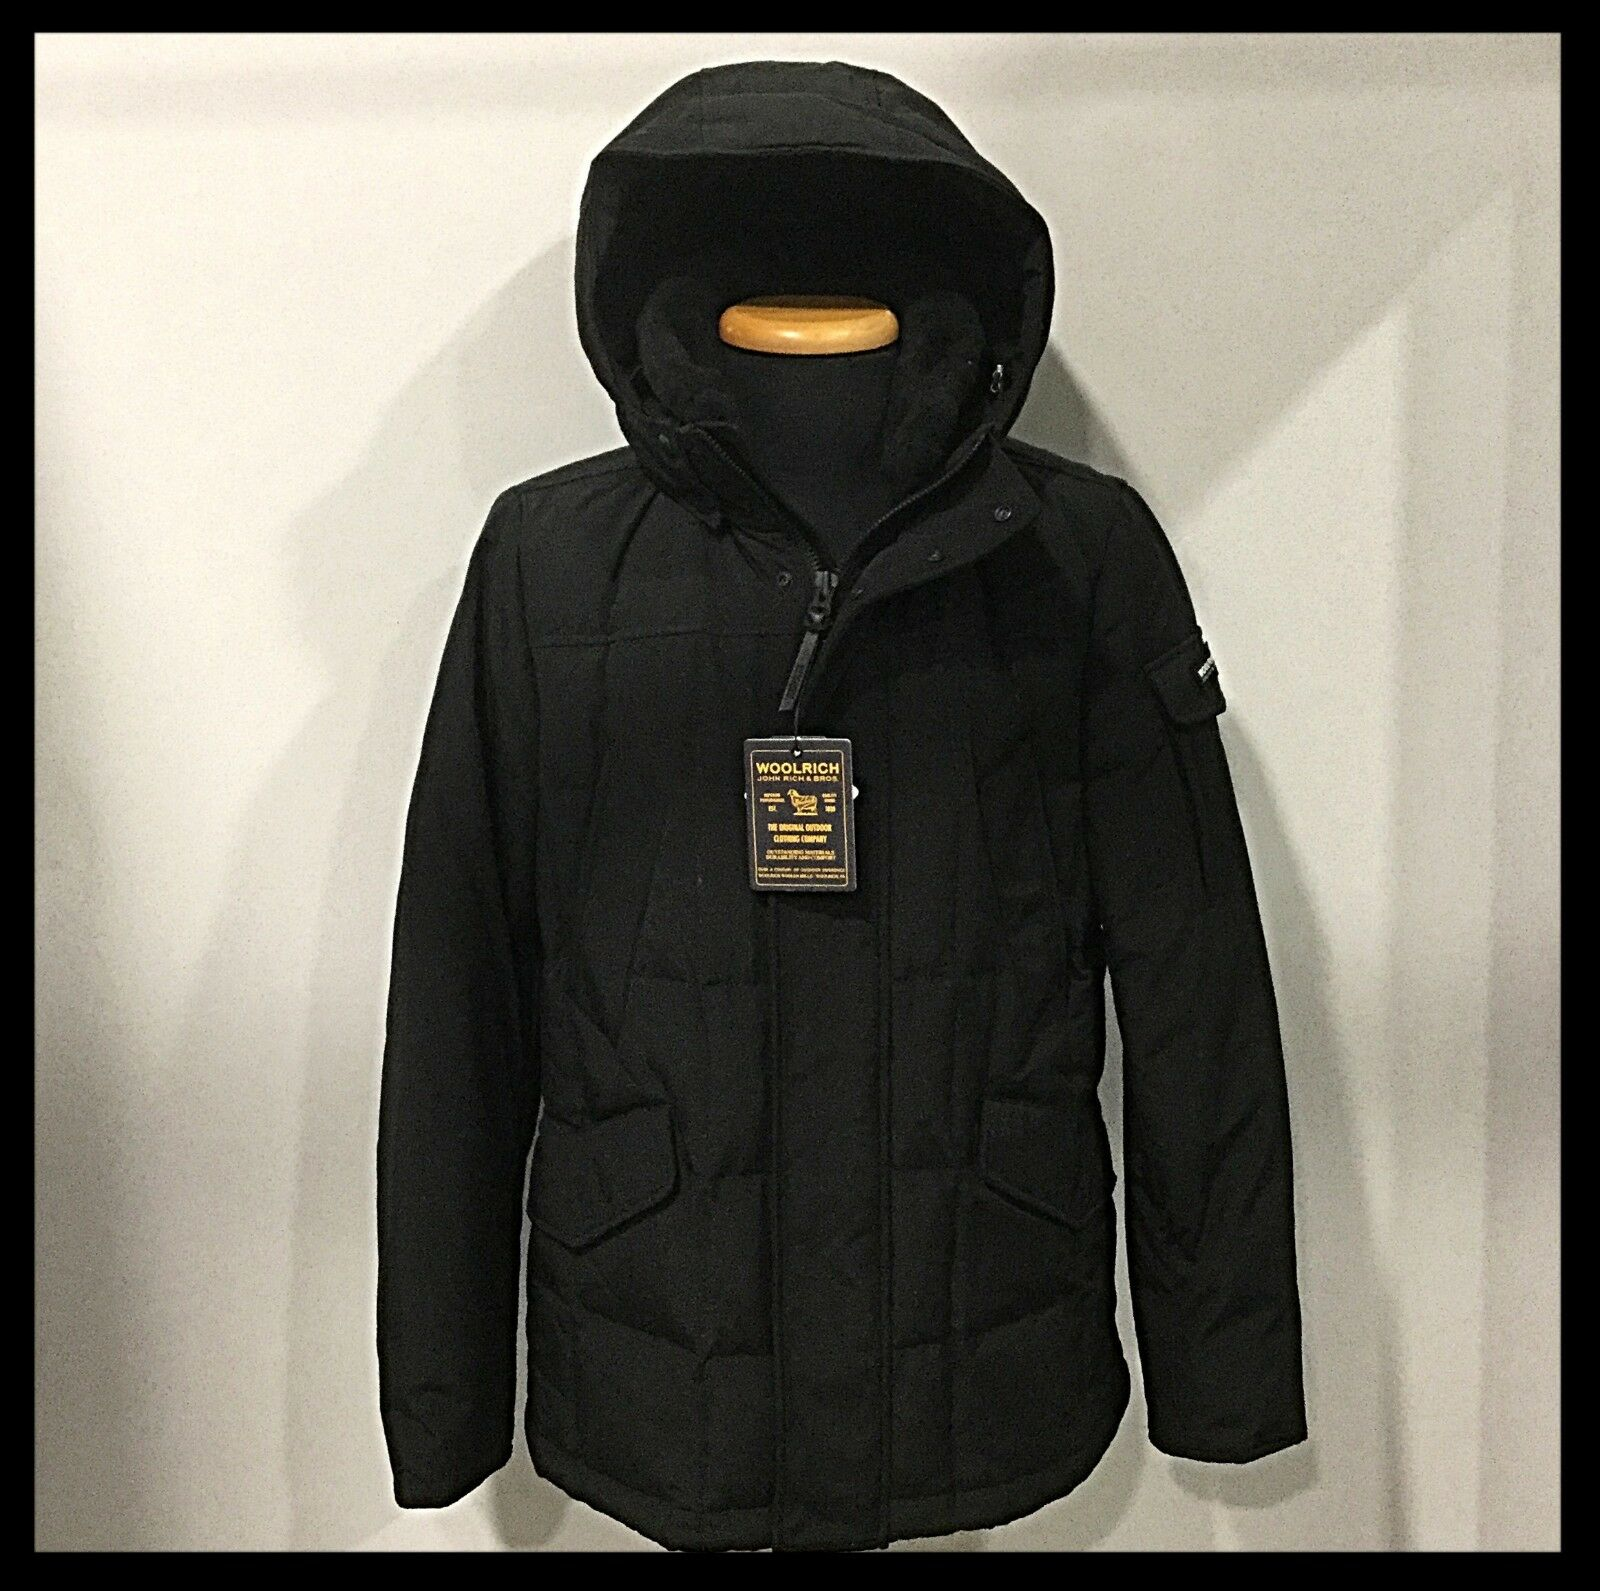 WOOLRICH - Giaccone Blizzard Field Jkt - Col. NERO